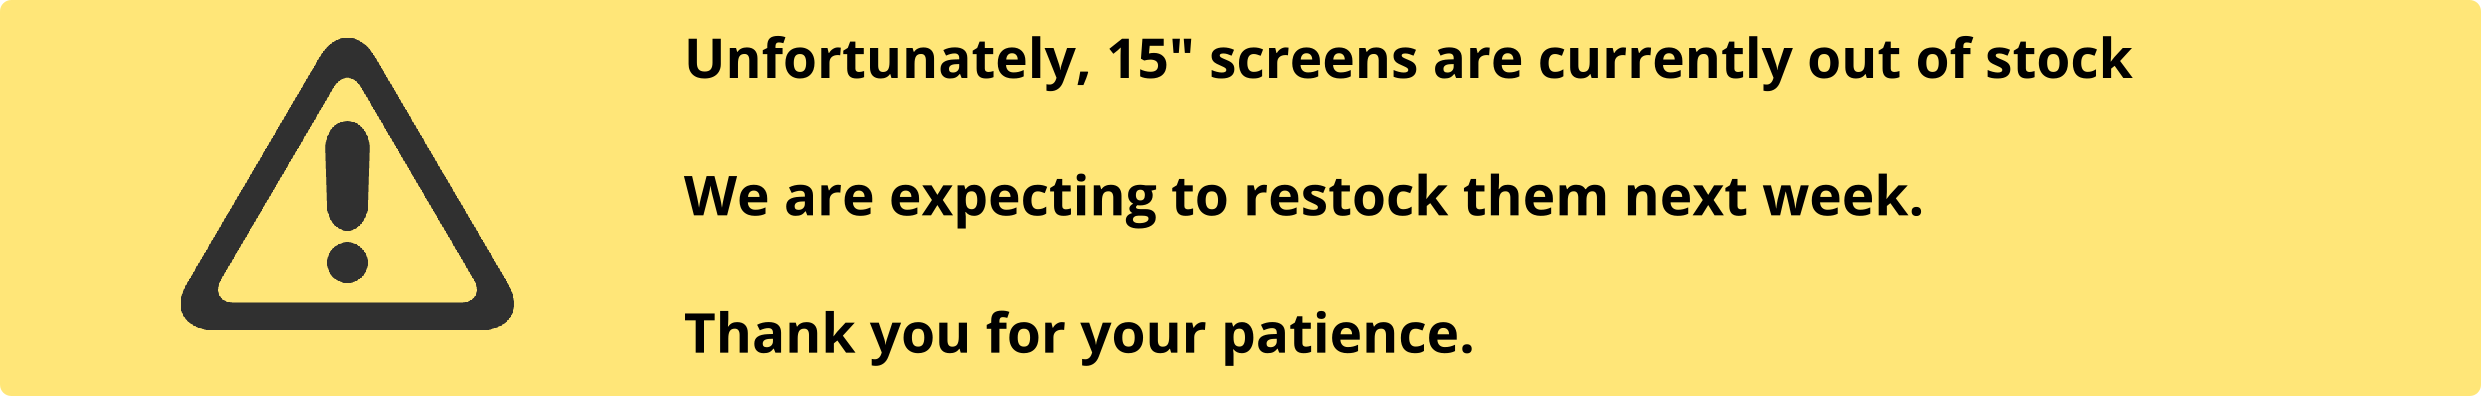 """Unfortunately, due to recent shipments delays, we are currently out of 15"""" touchscreens. Sorry for the inconvenience."""